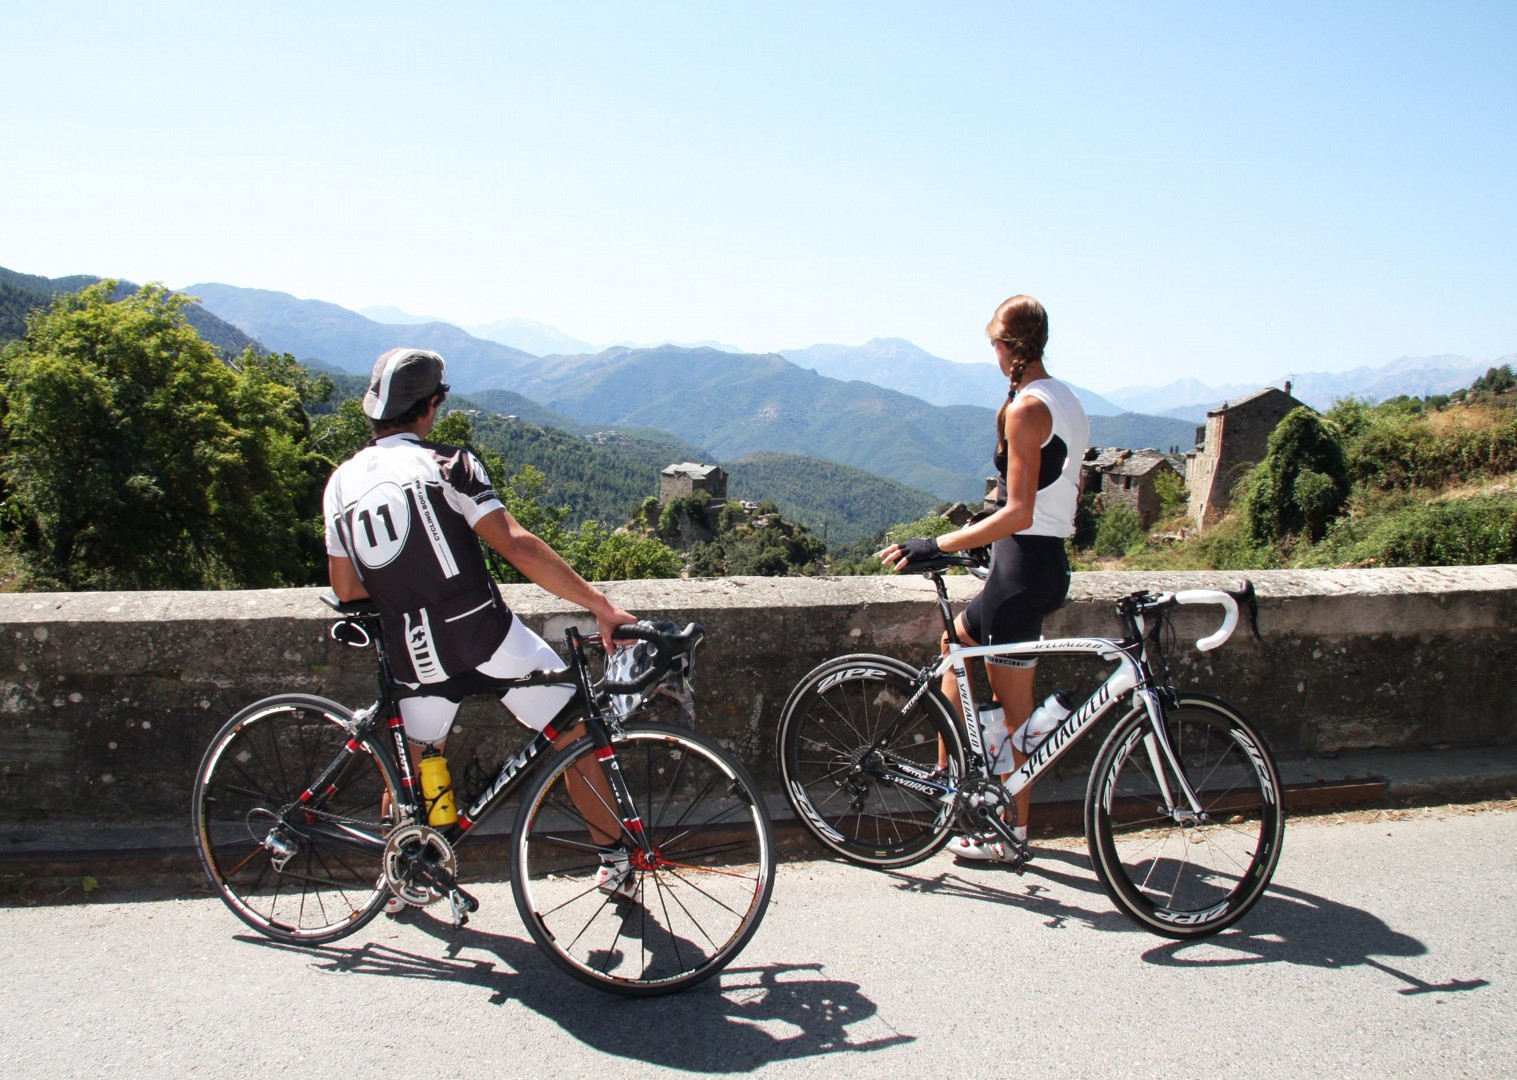 corsica-guided-road-cycling-holiday-the-beautiful-isle.jpg - France - Corsica - The Beautiful Isle - Road Cycling